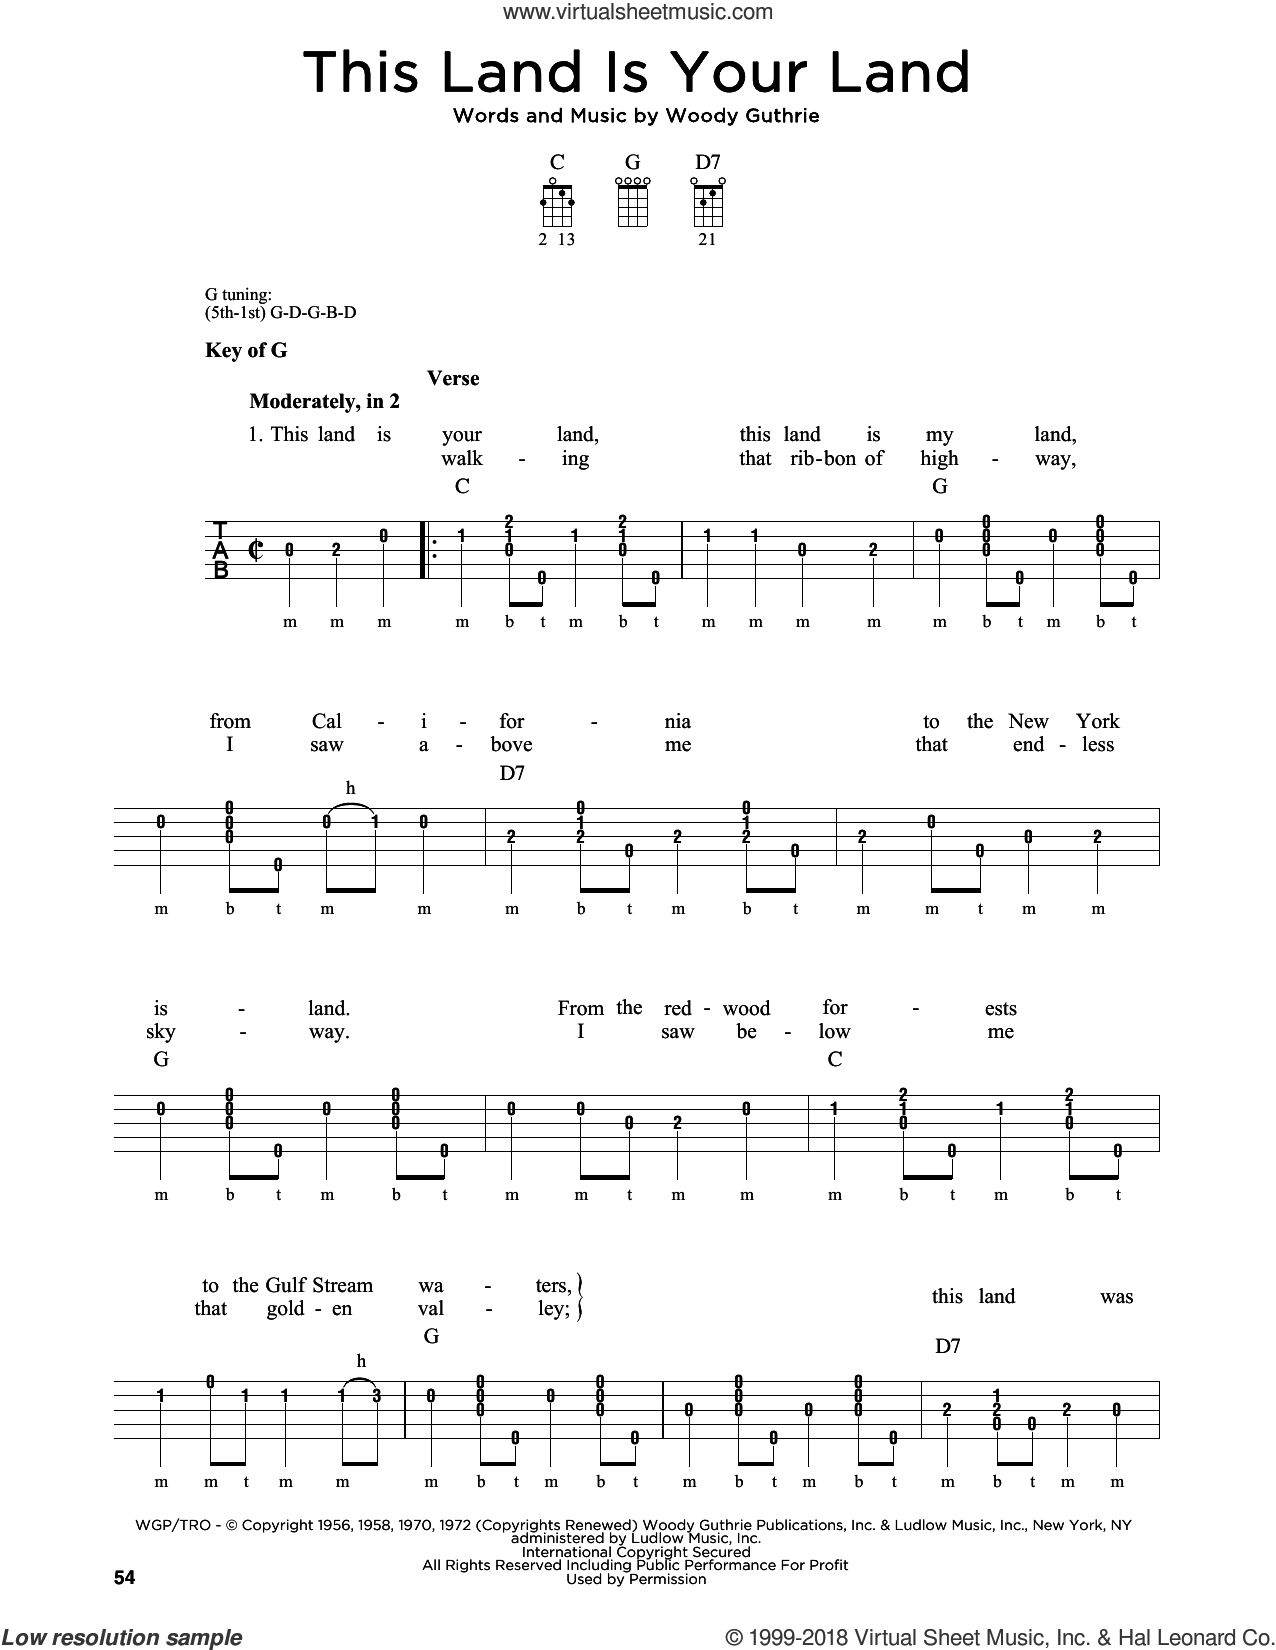 This Land Is Your Land sheet music for banjo solo by Woody Guthrie